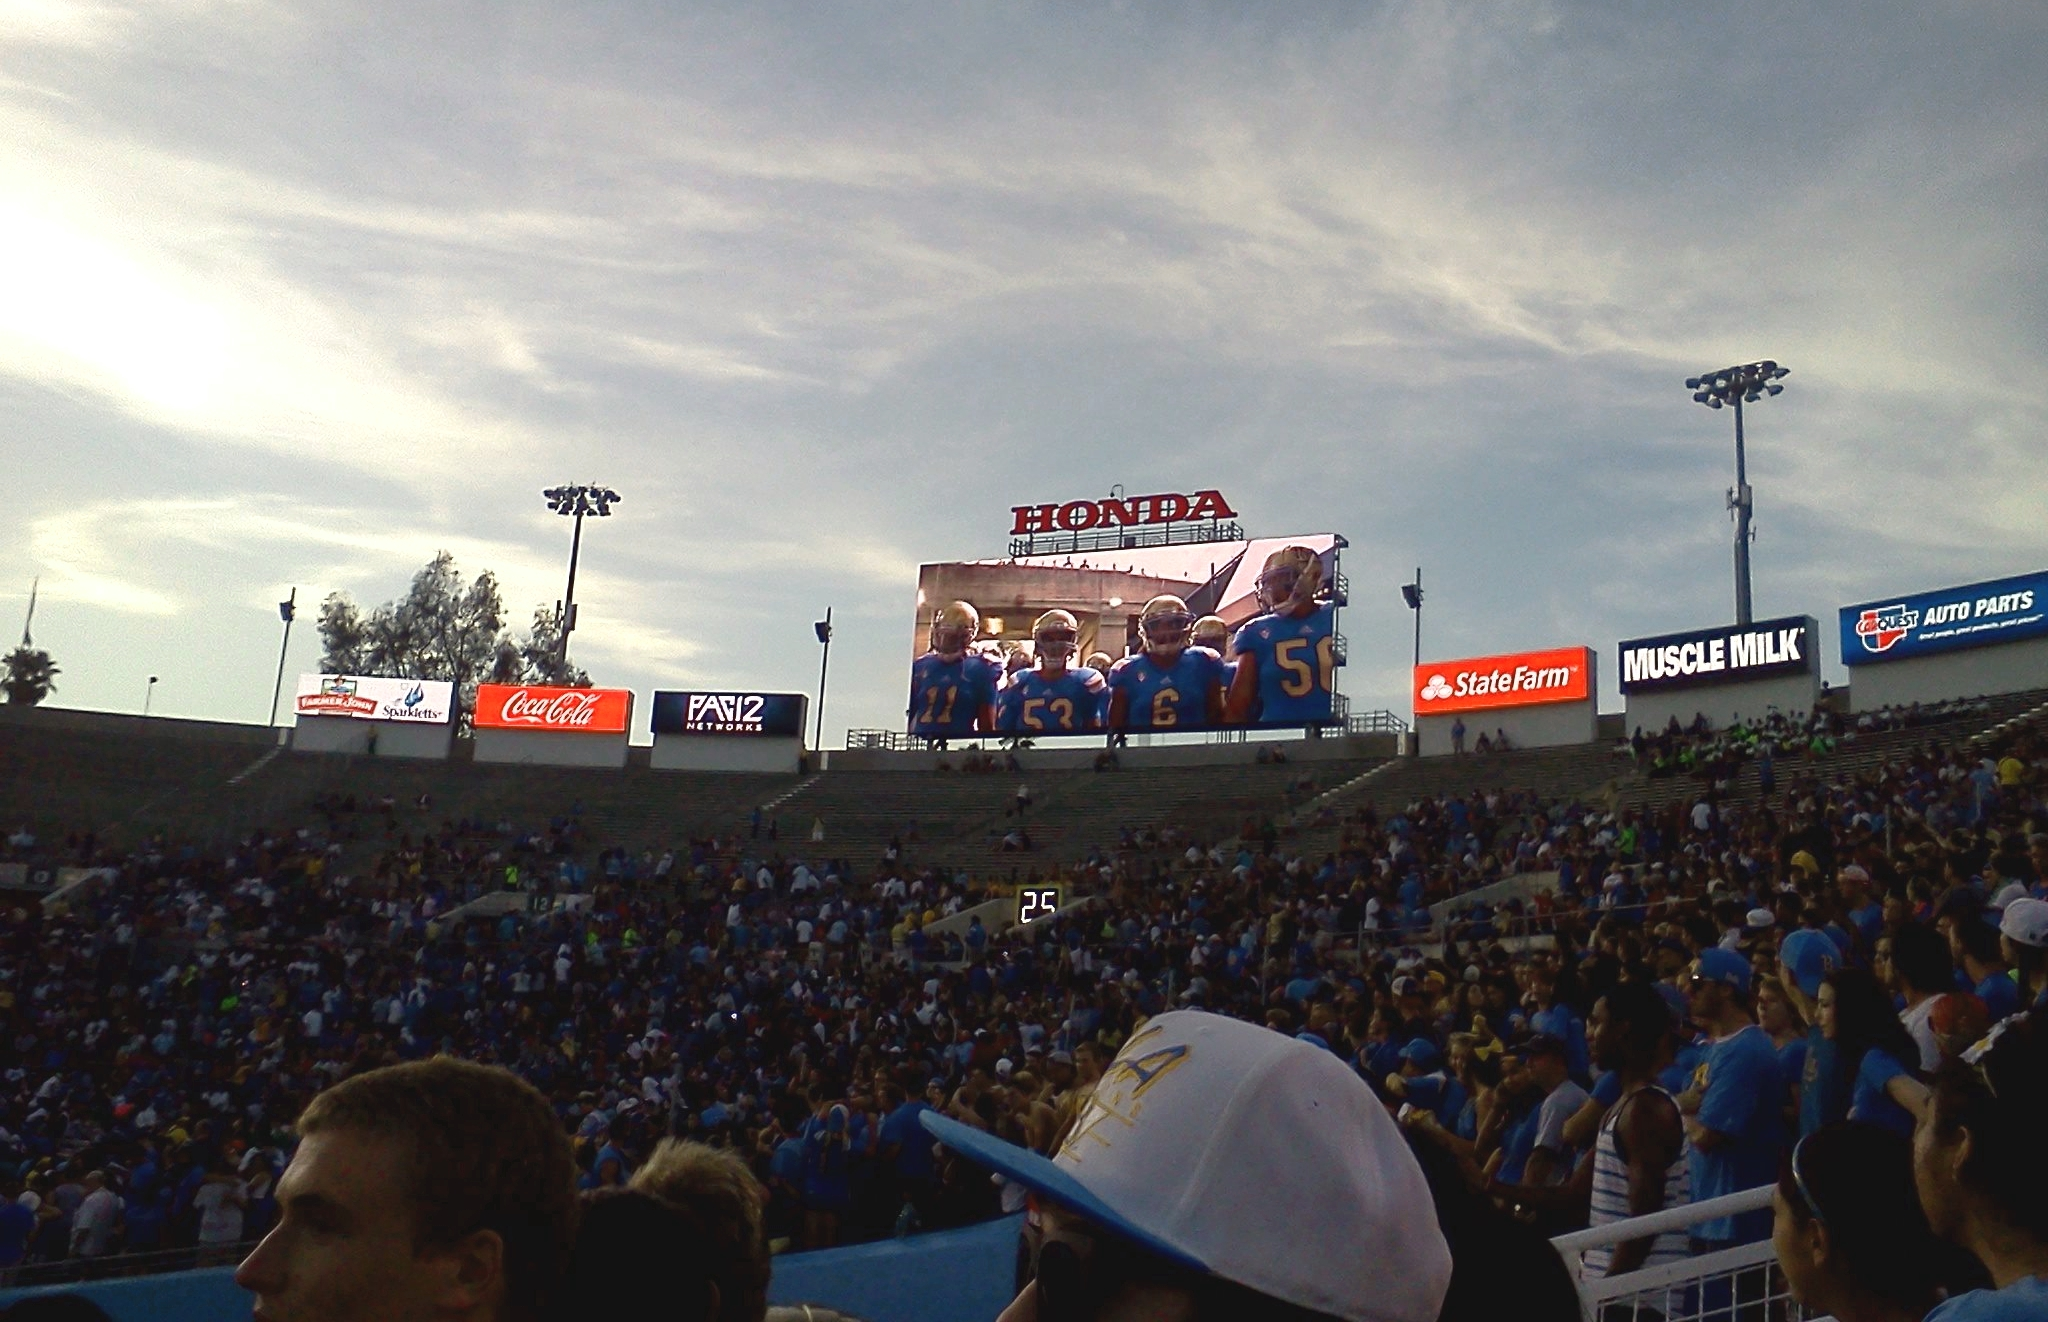 Video intro at UCLA's home opener against Nevada